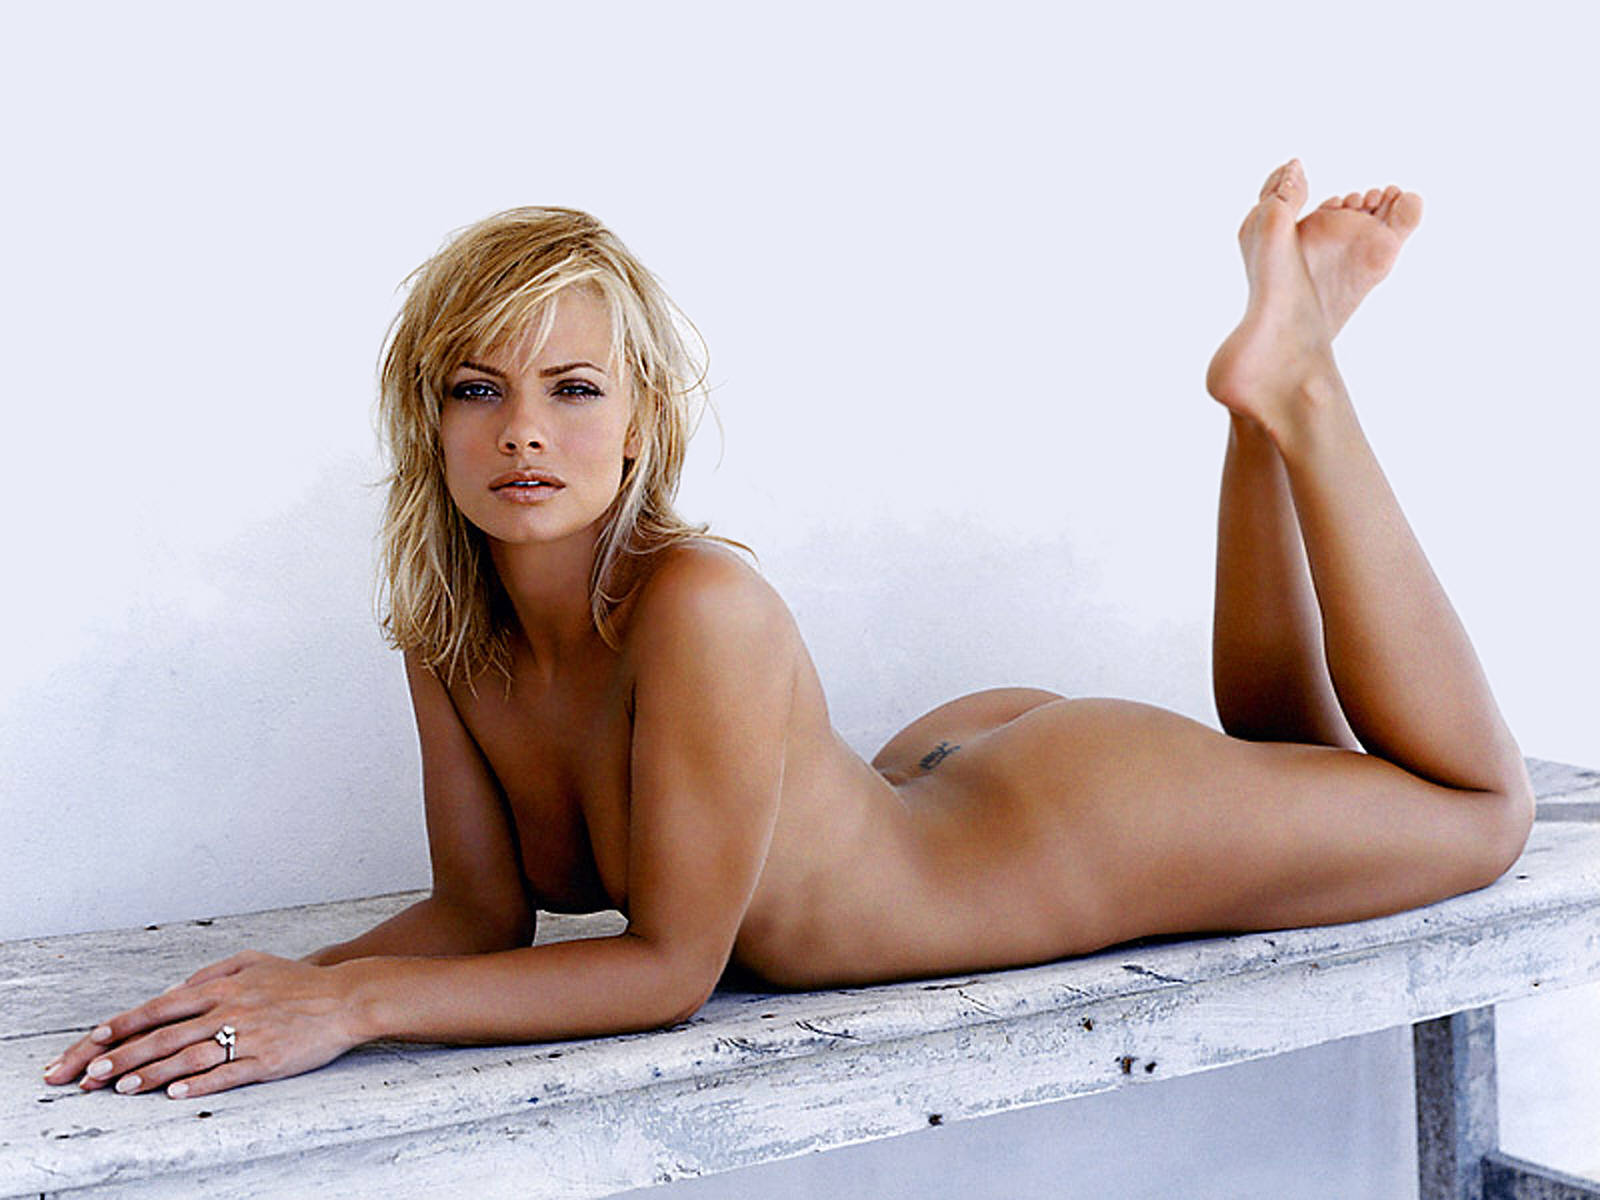 Jaime pressly topless, benefits of high frequency facial